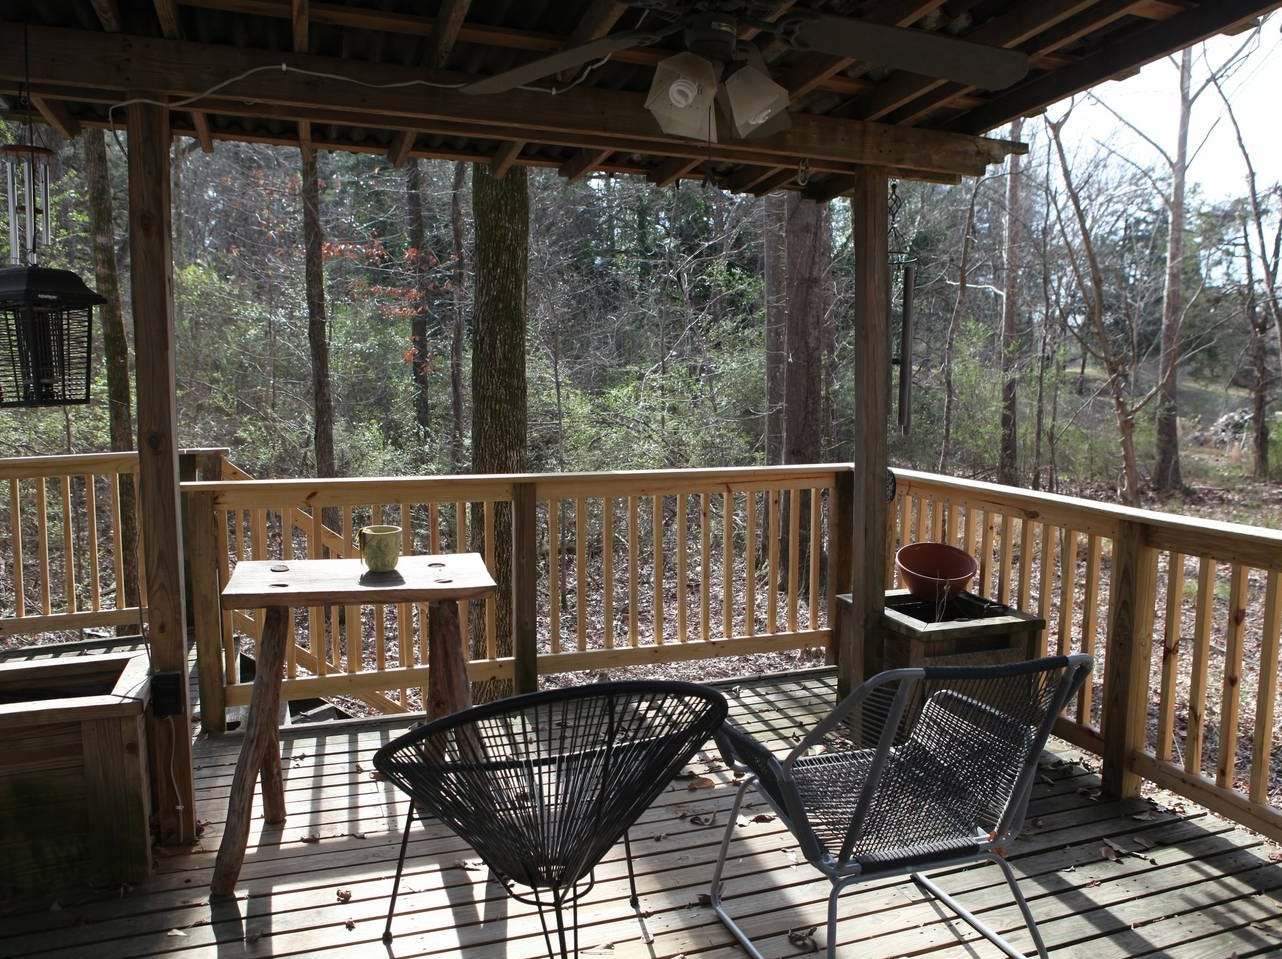 This Starkville Cozy Cabin Get-a-way Starkville is very private but convenient to everything in town.